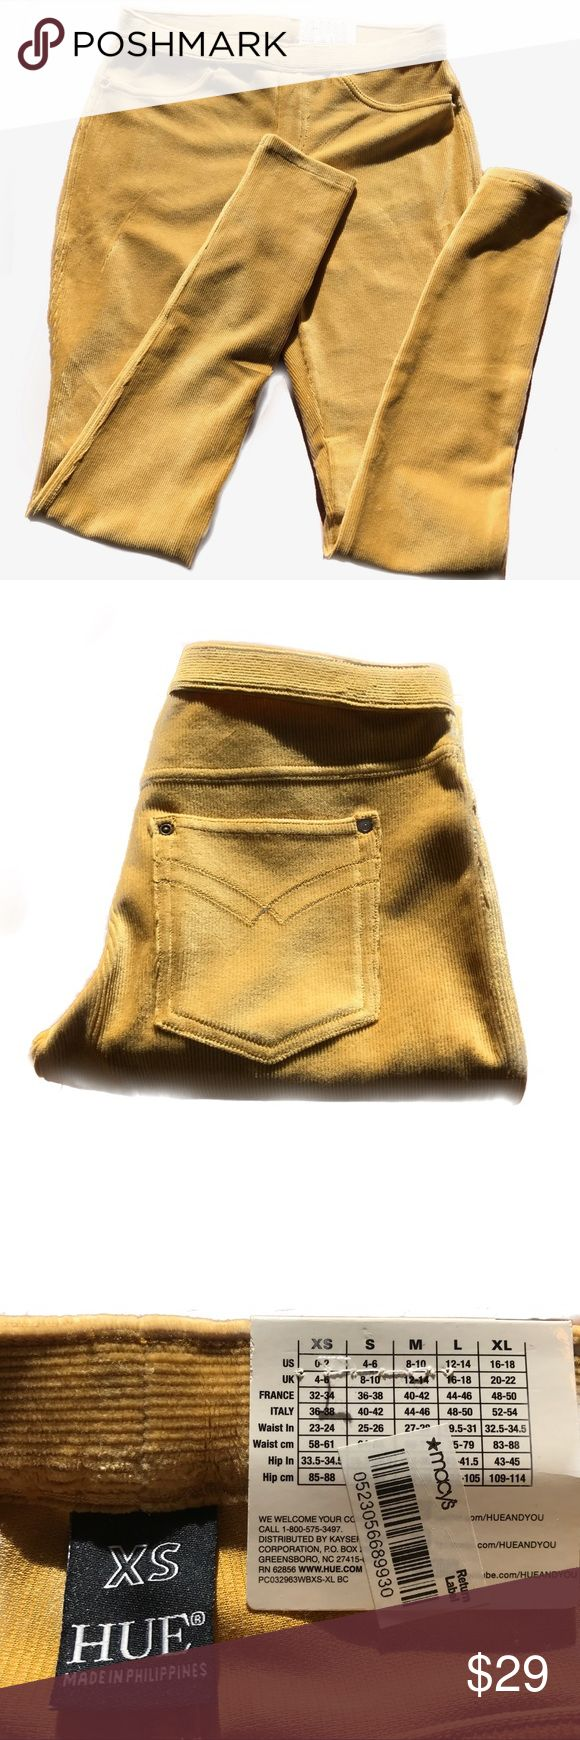 NWT Hue mustard yellow corduroy leggings New with tags, mustard yellow, corduroy leggings from HUE! Flannel is also listed for purchase. Made from 54% cotton, 42% polyester, and 4% spandex. HUE Pants Leggings